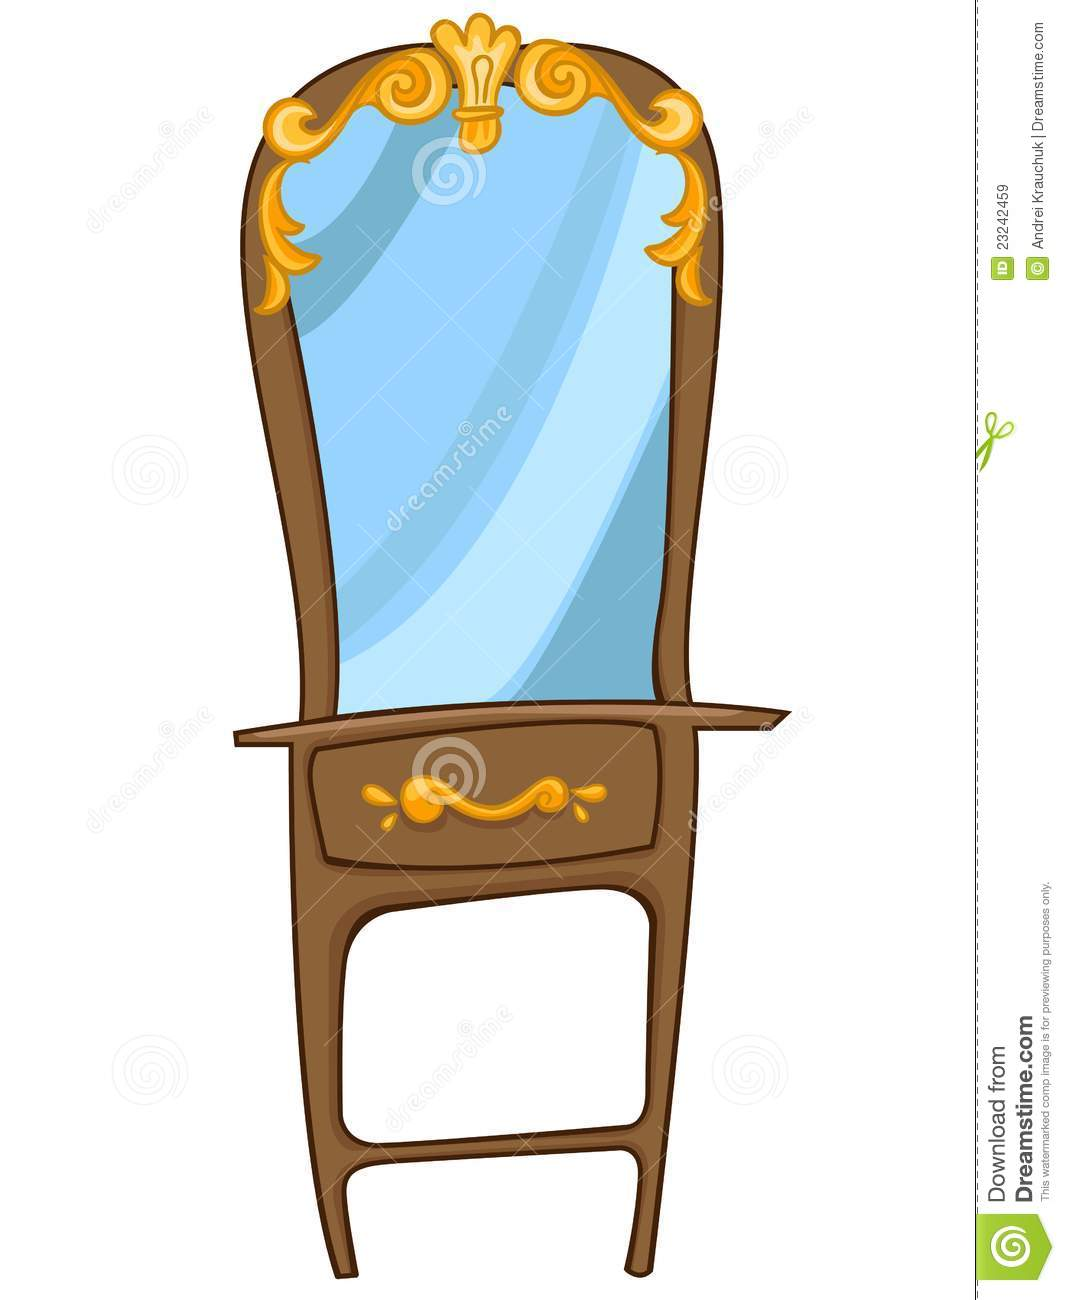 Cartoon Home Furniture Chest Of Drawers Royalty Free Stock